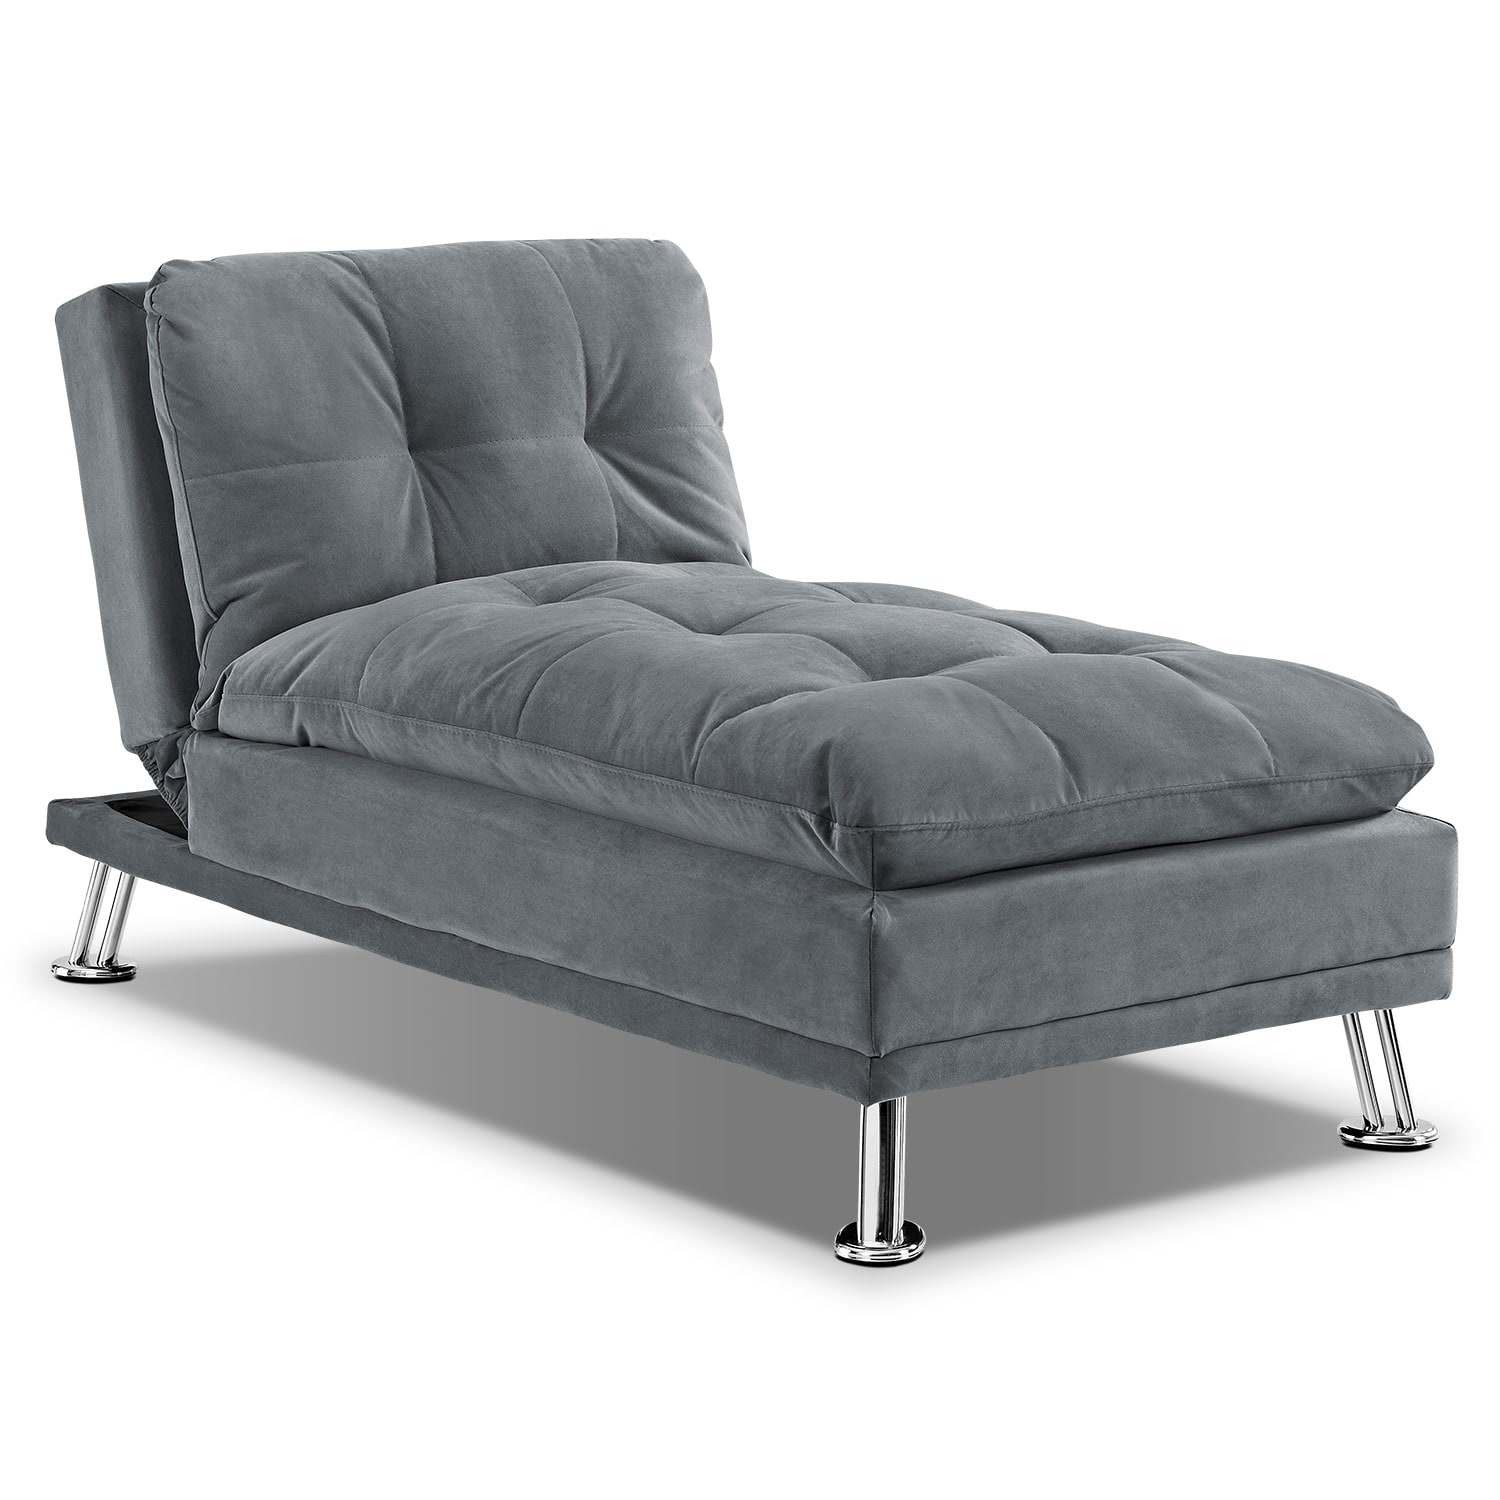 Waltz Futon Sofa Bed with Chaise Gray